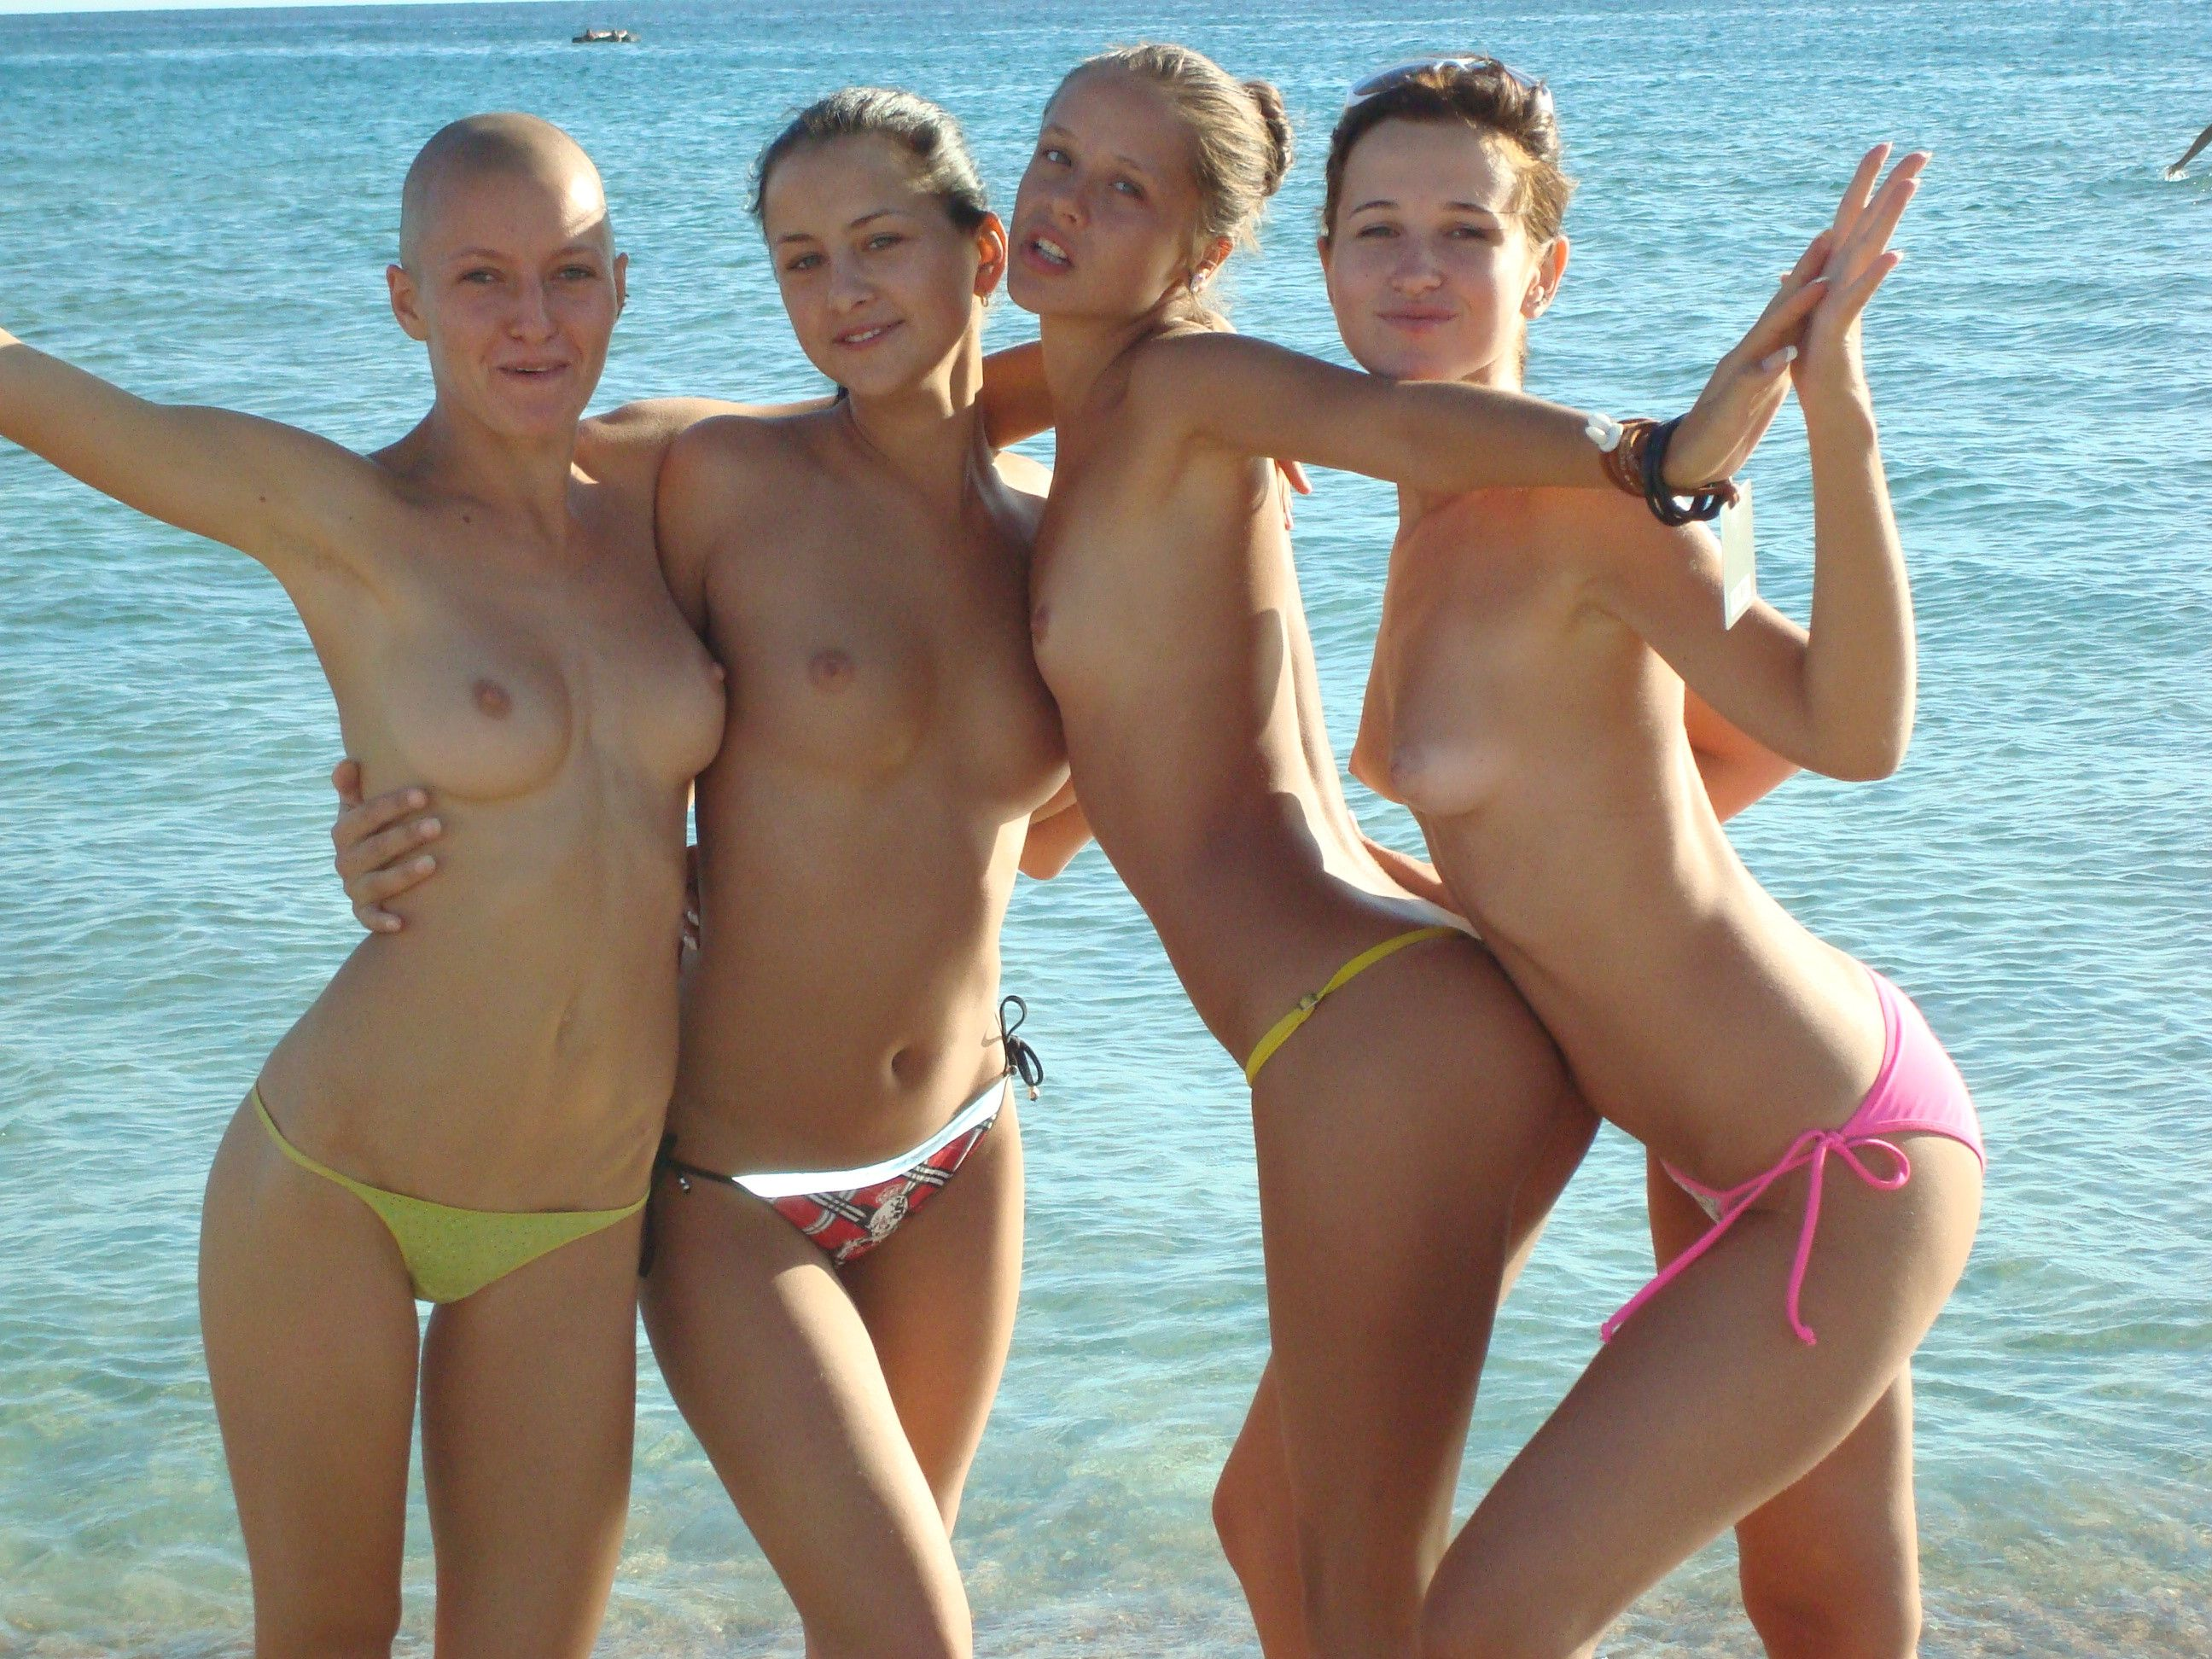 australian beach babe naked - All about public nudity, nude beach girls, family nudist camps, pure nudism  and naturism.